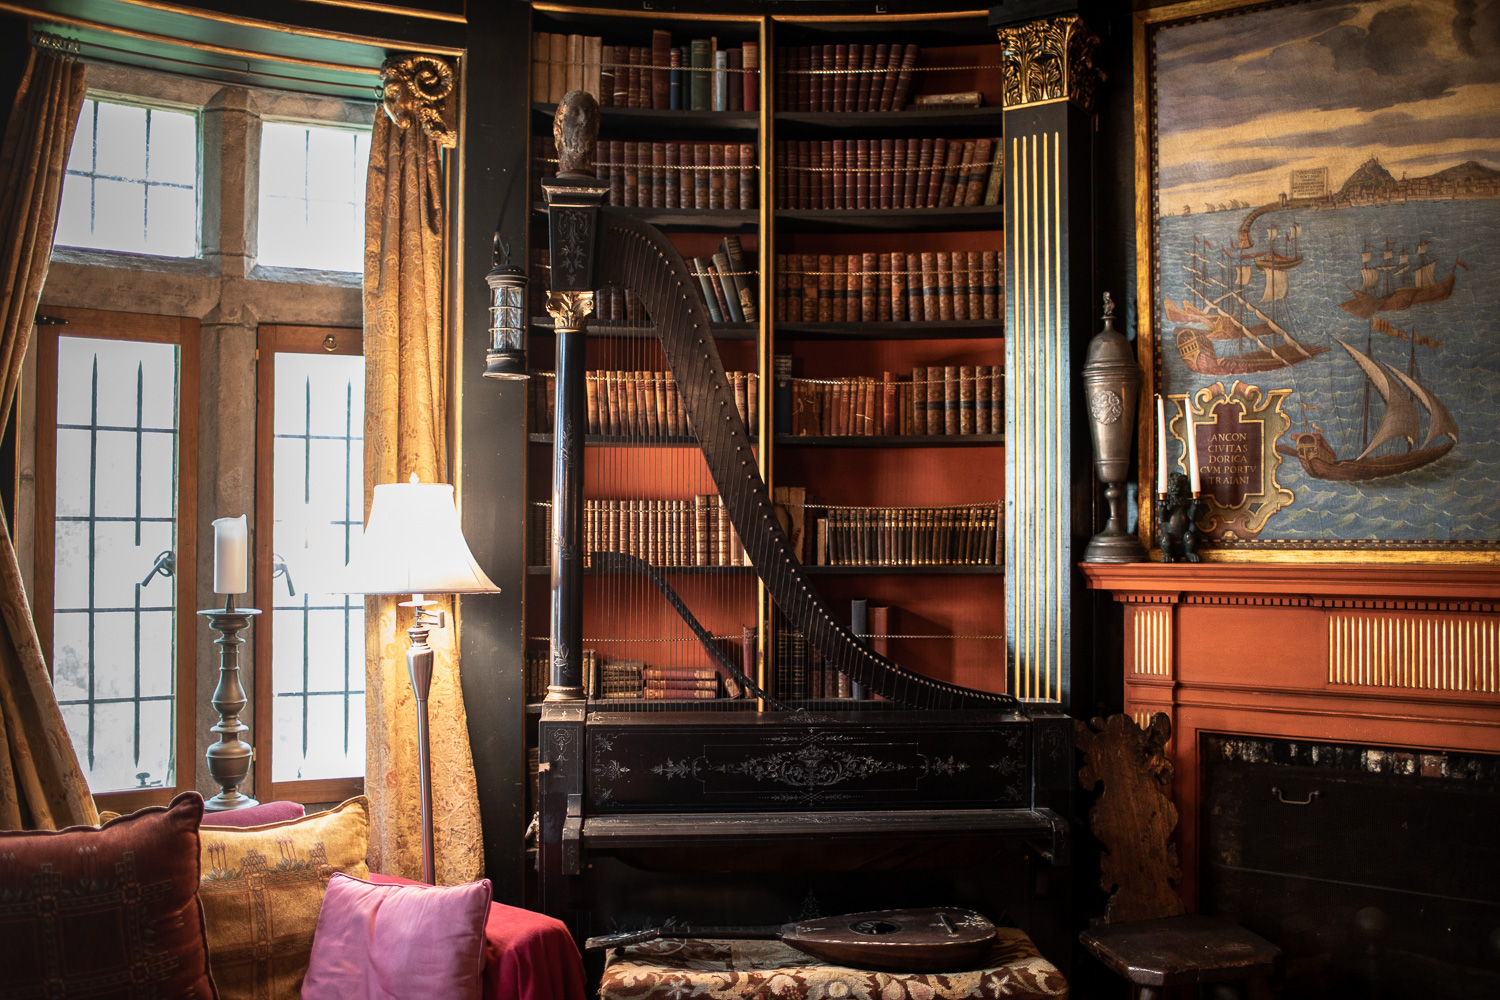 The library room where John Hays Hammond Jr. would conduct business meetings and read his favorite books.